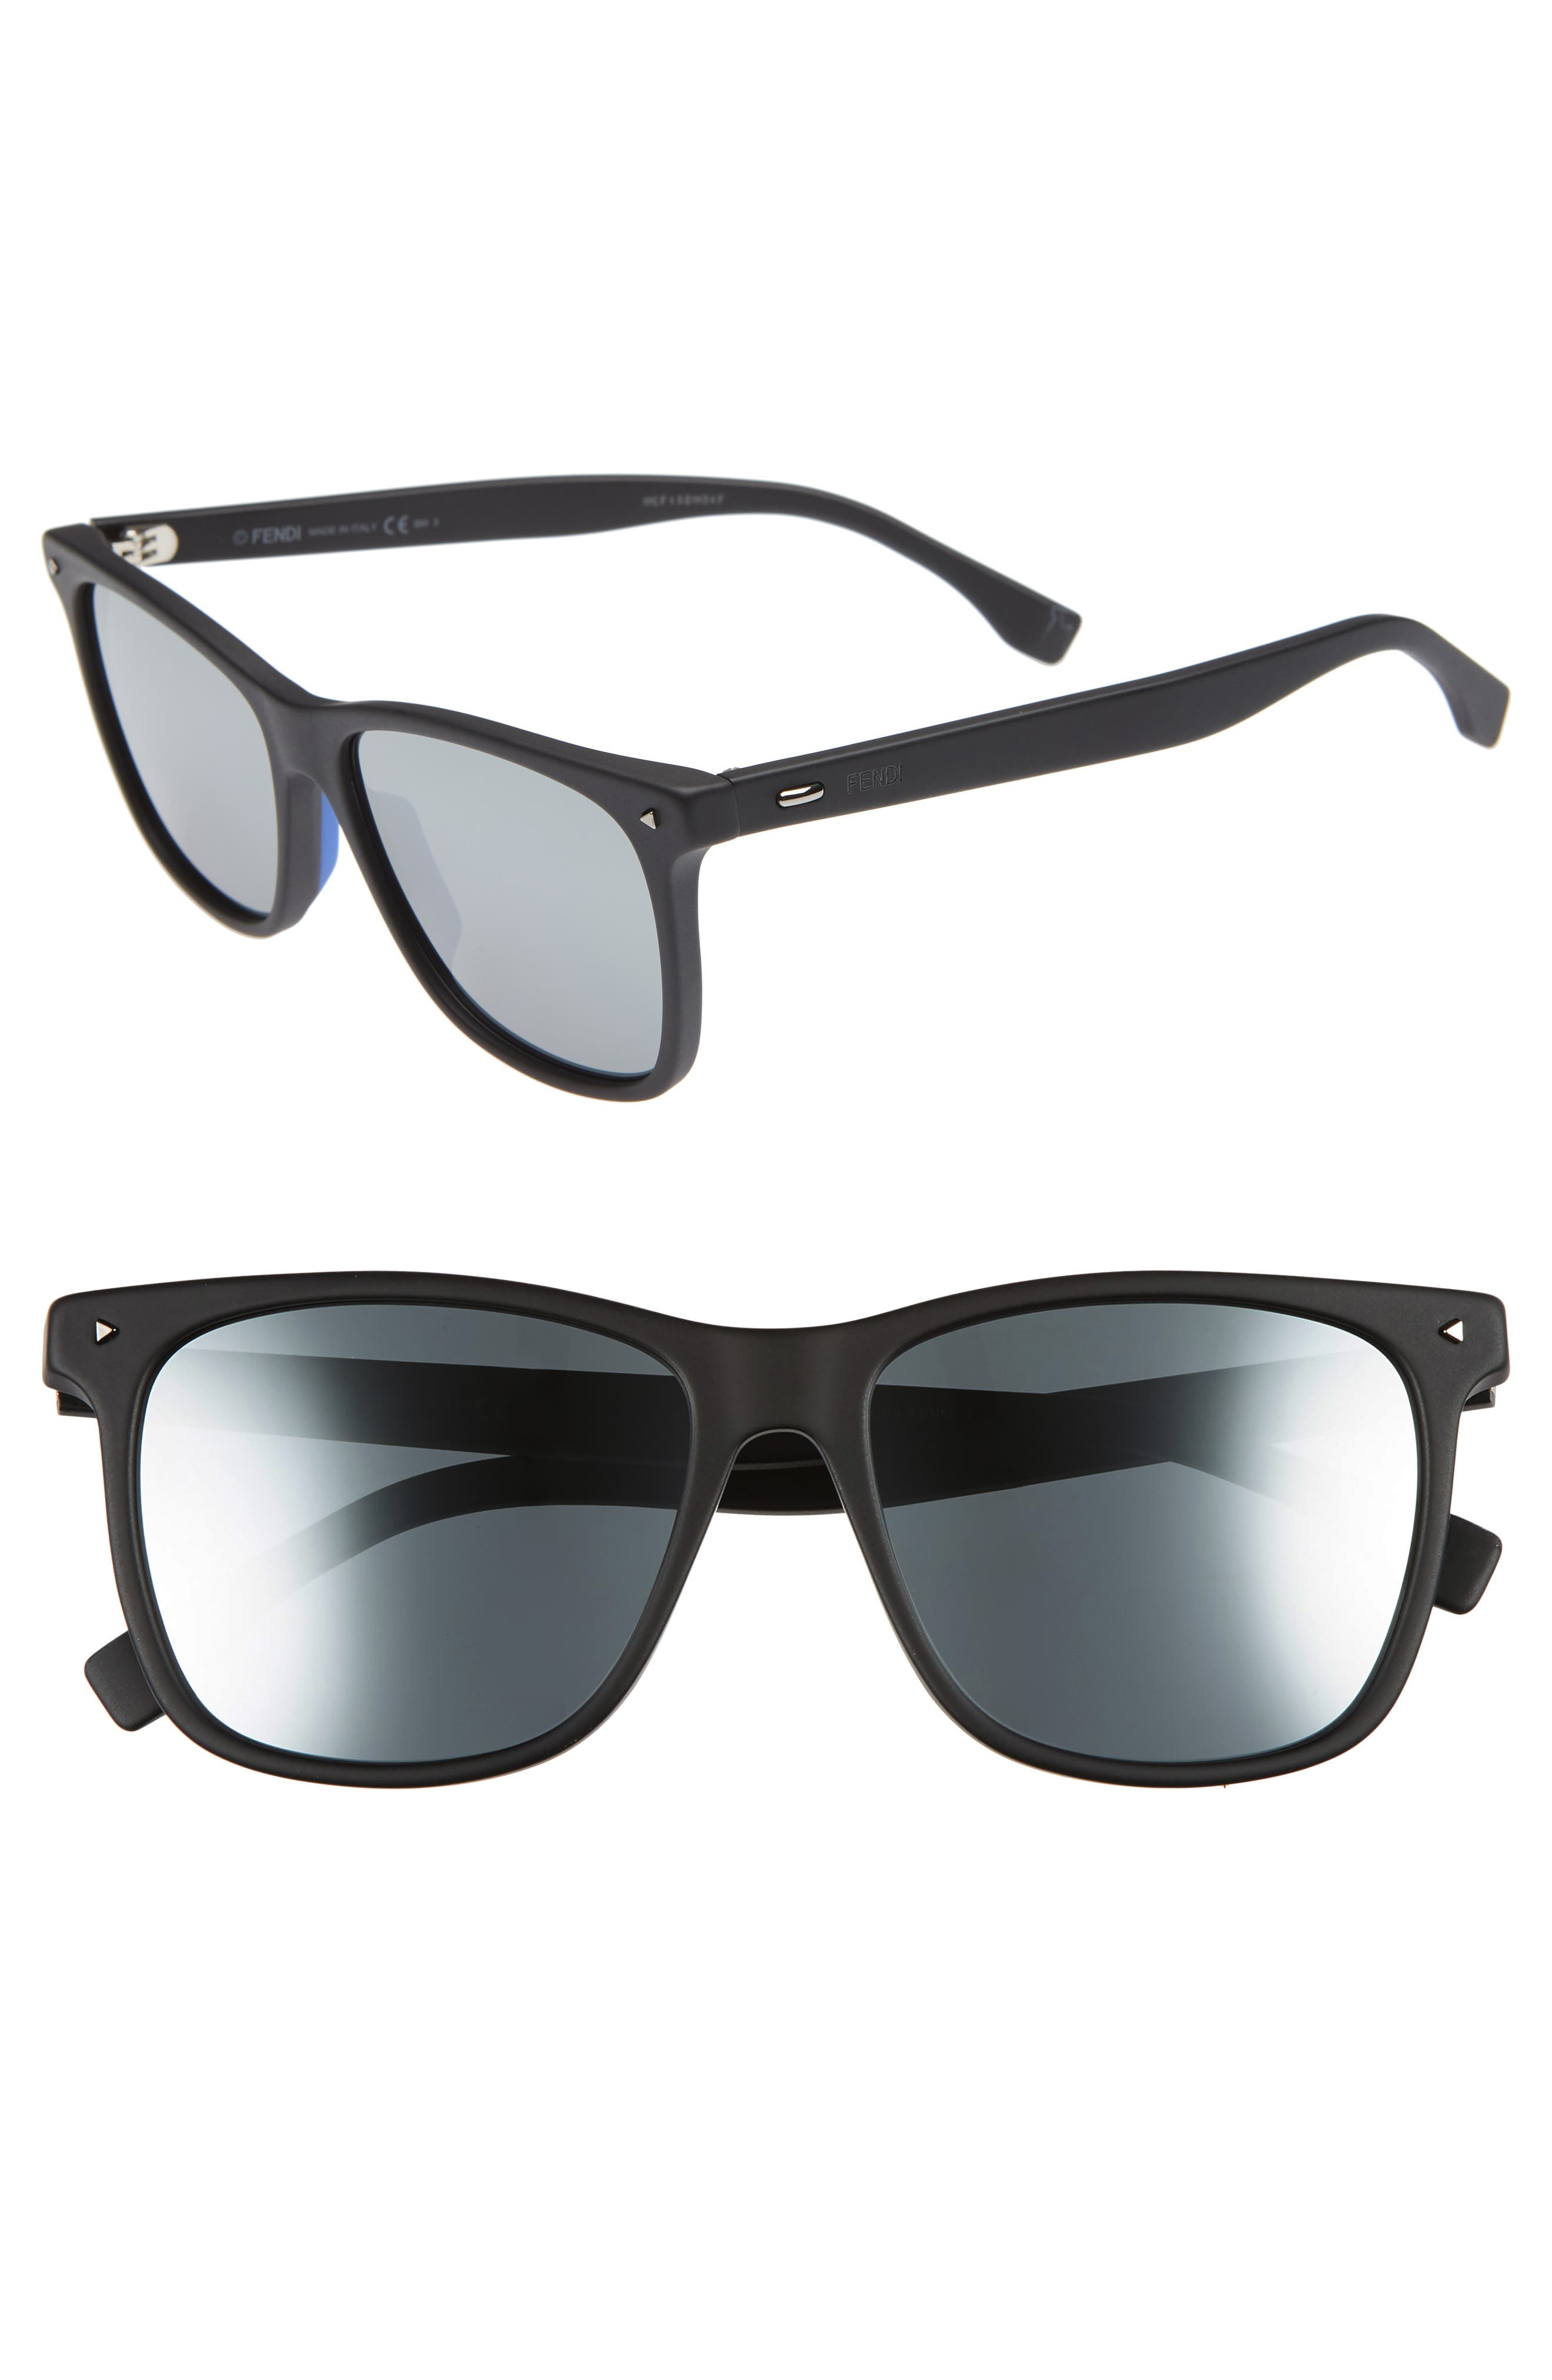 55mm Polarized Sunglasses,                         Main,                         color, MATTE BLACK